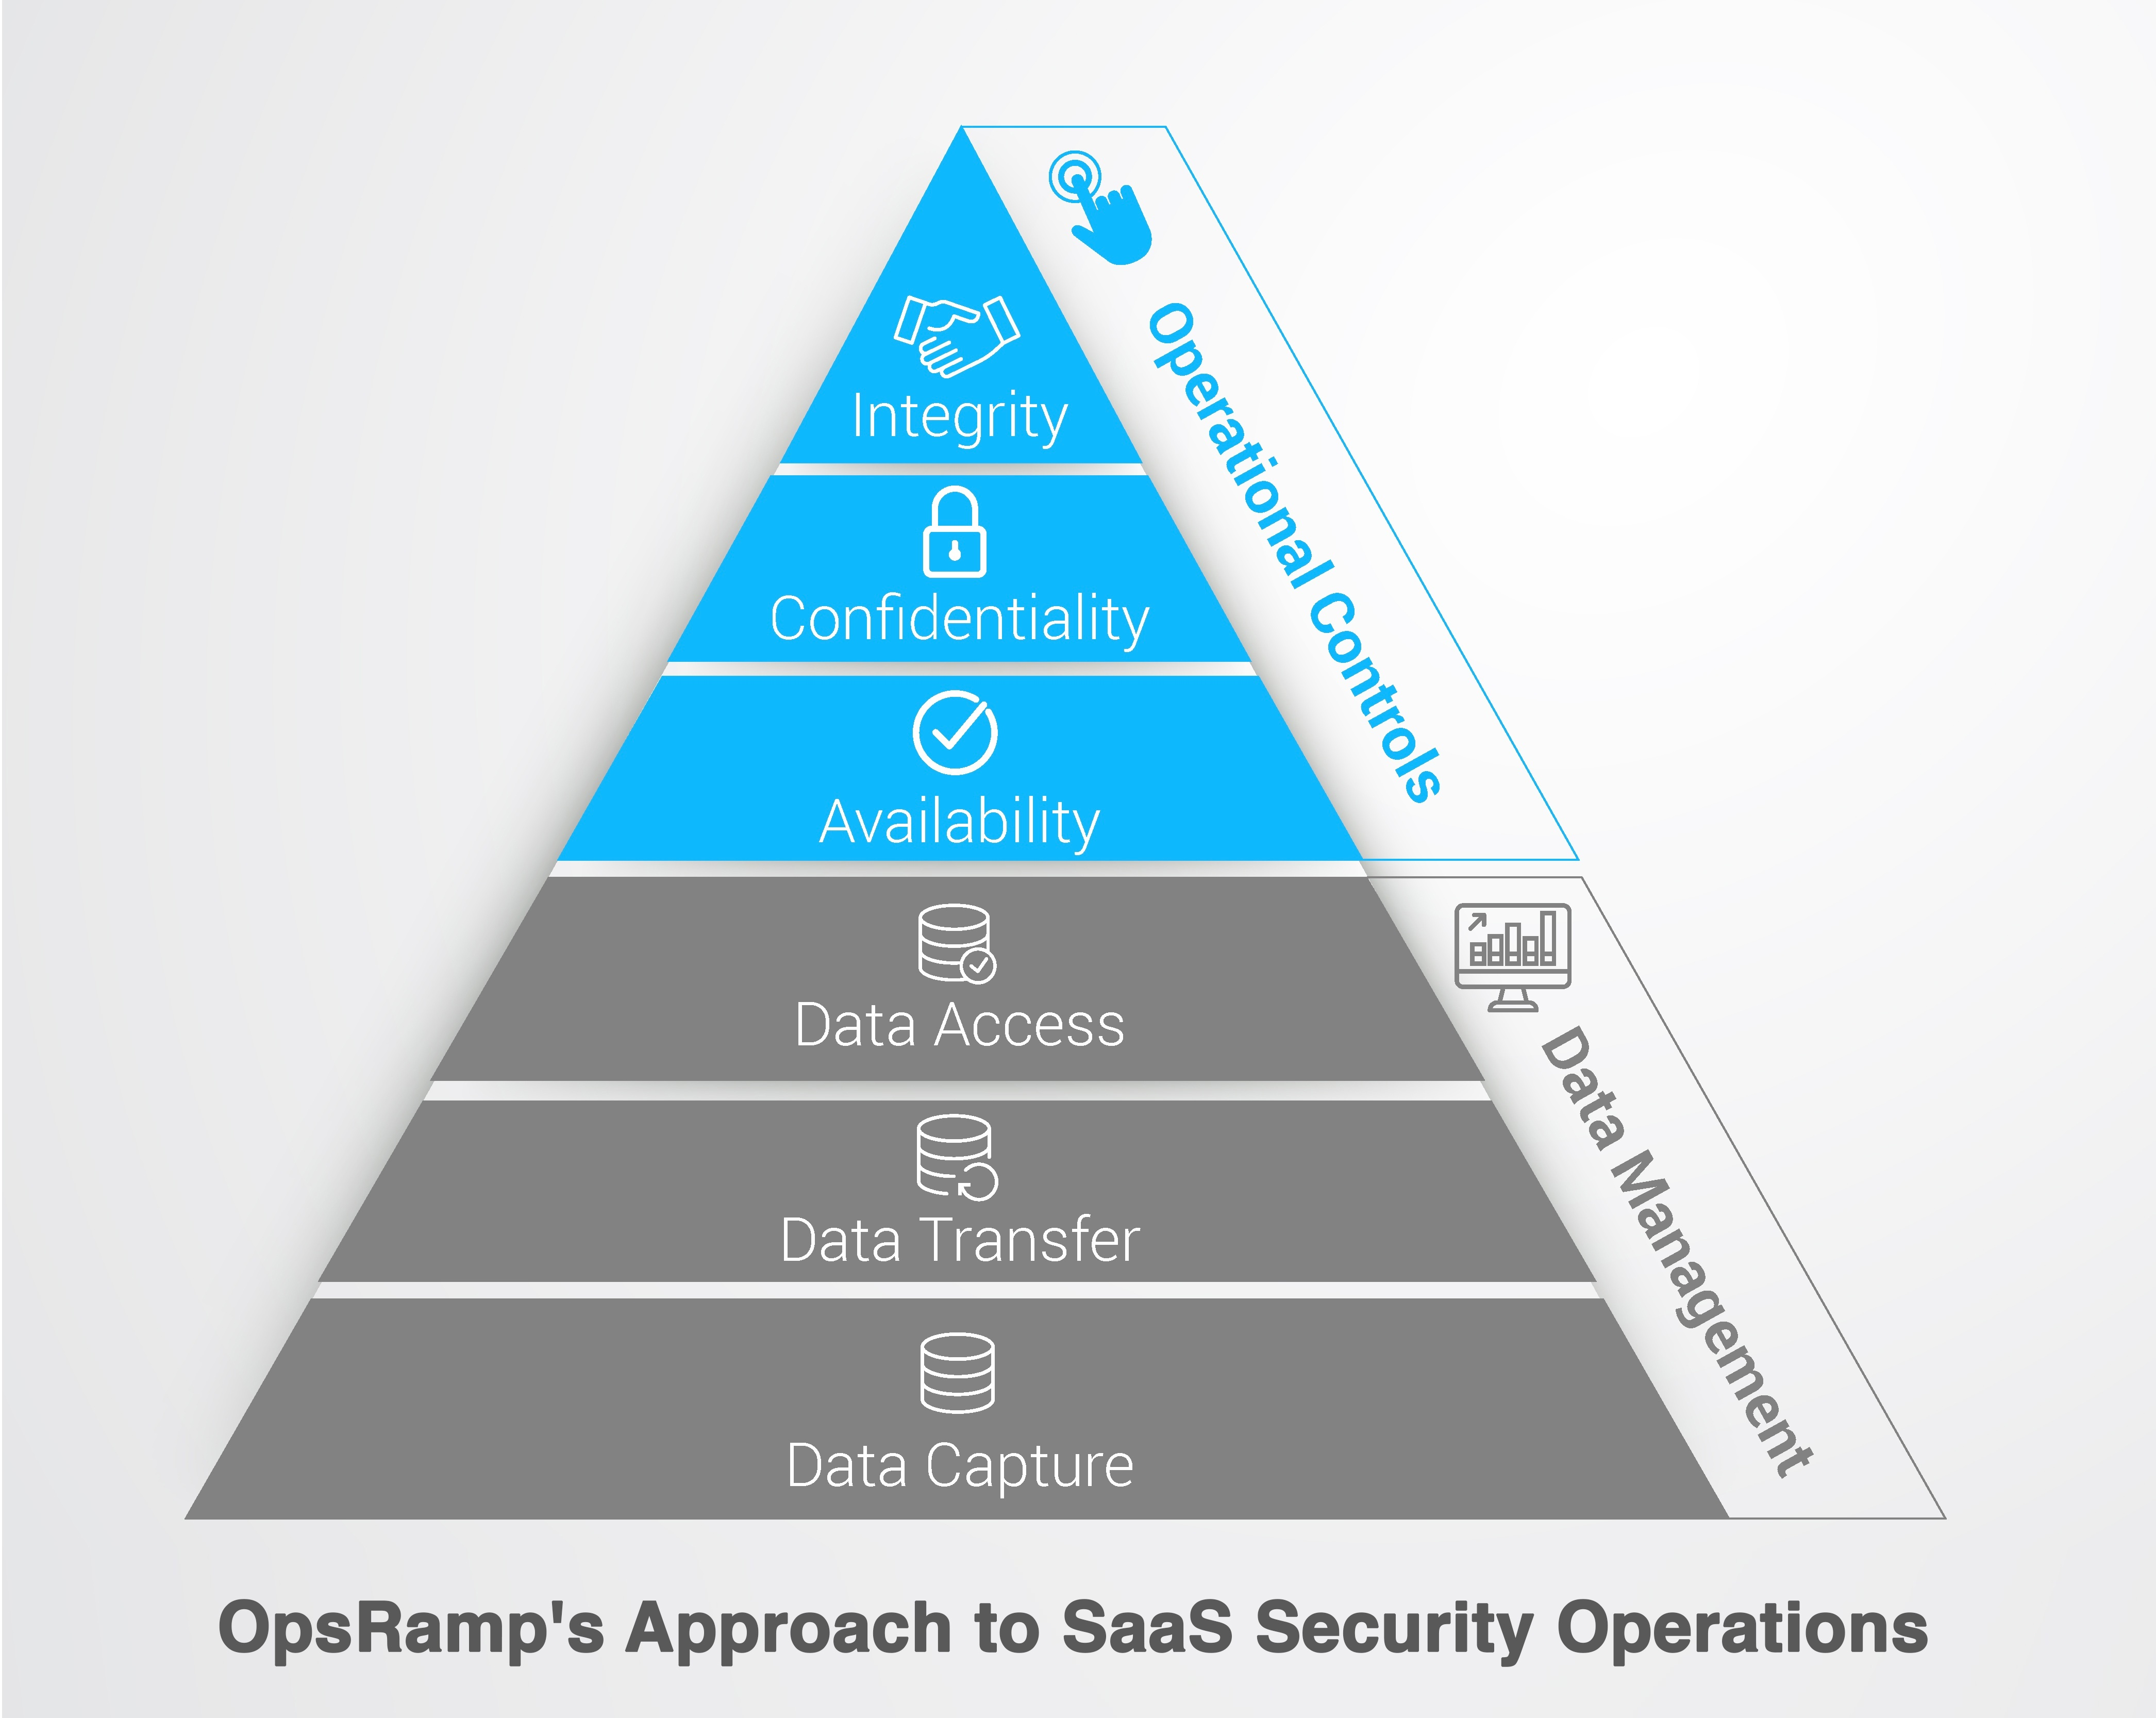 OpsRamp's Approach to SaaS Security Operations